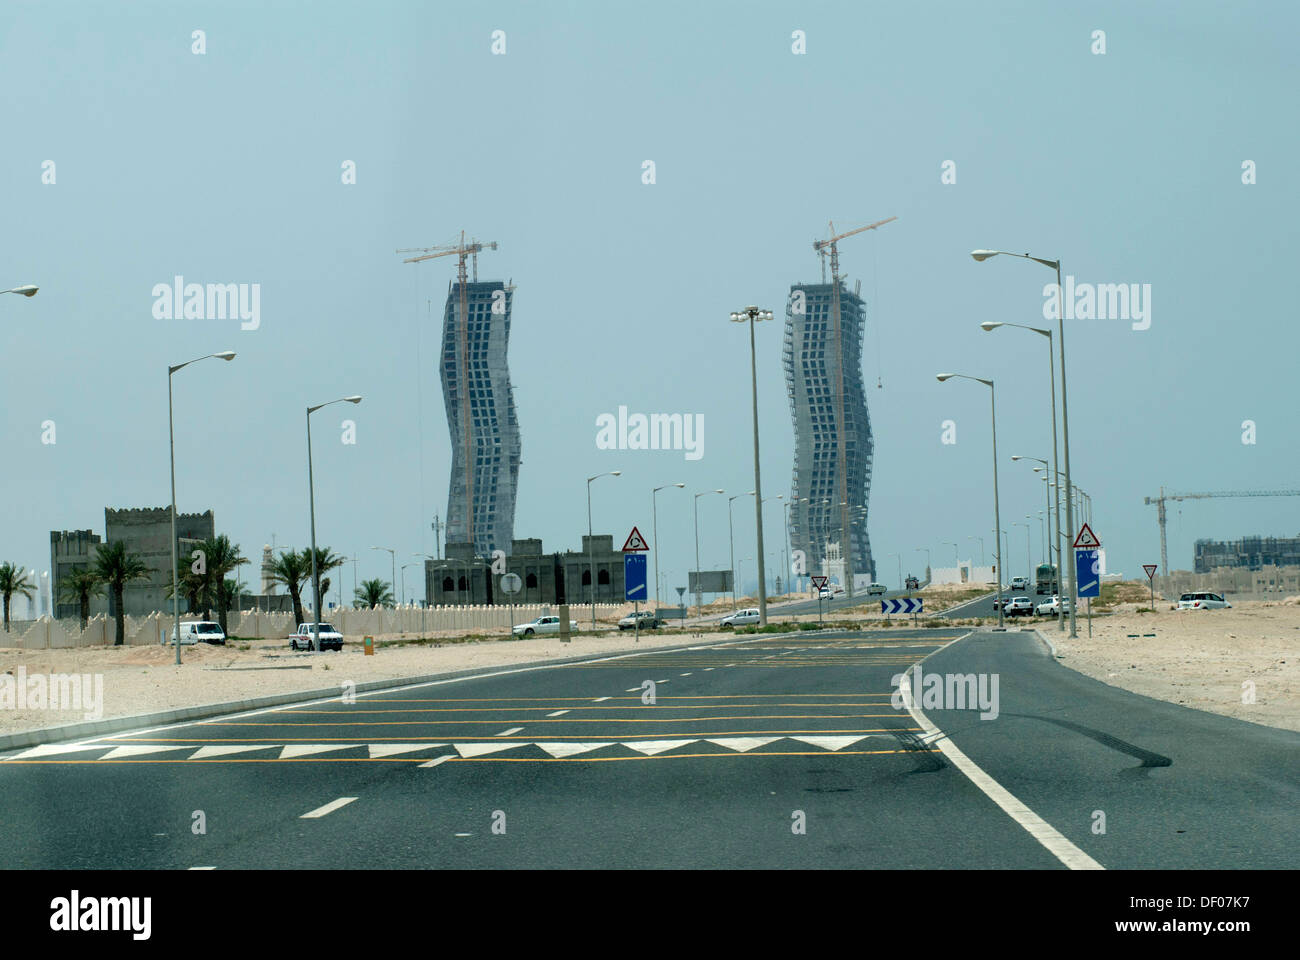 Doha Qatar architecture buildings construction and road view - Stock Image